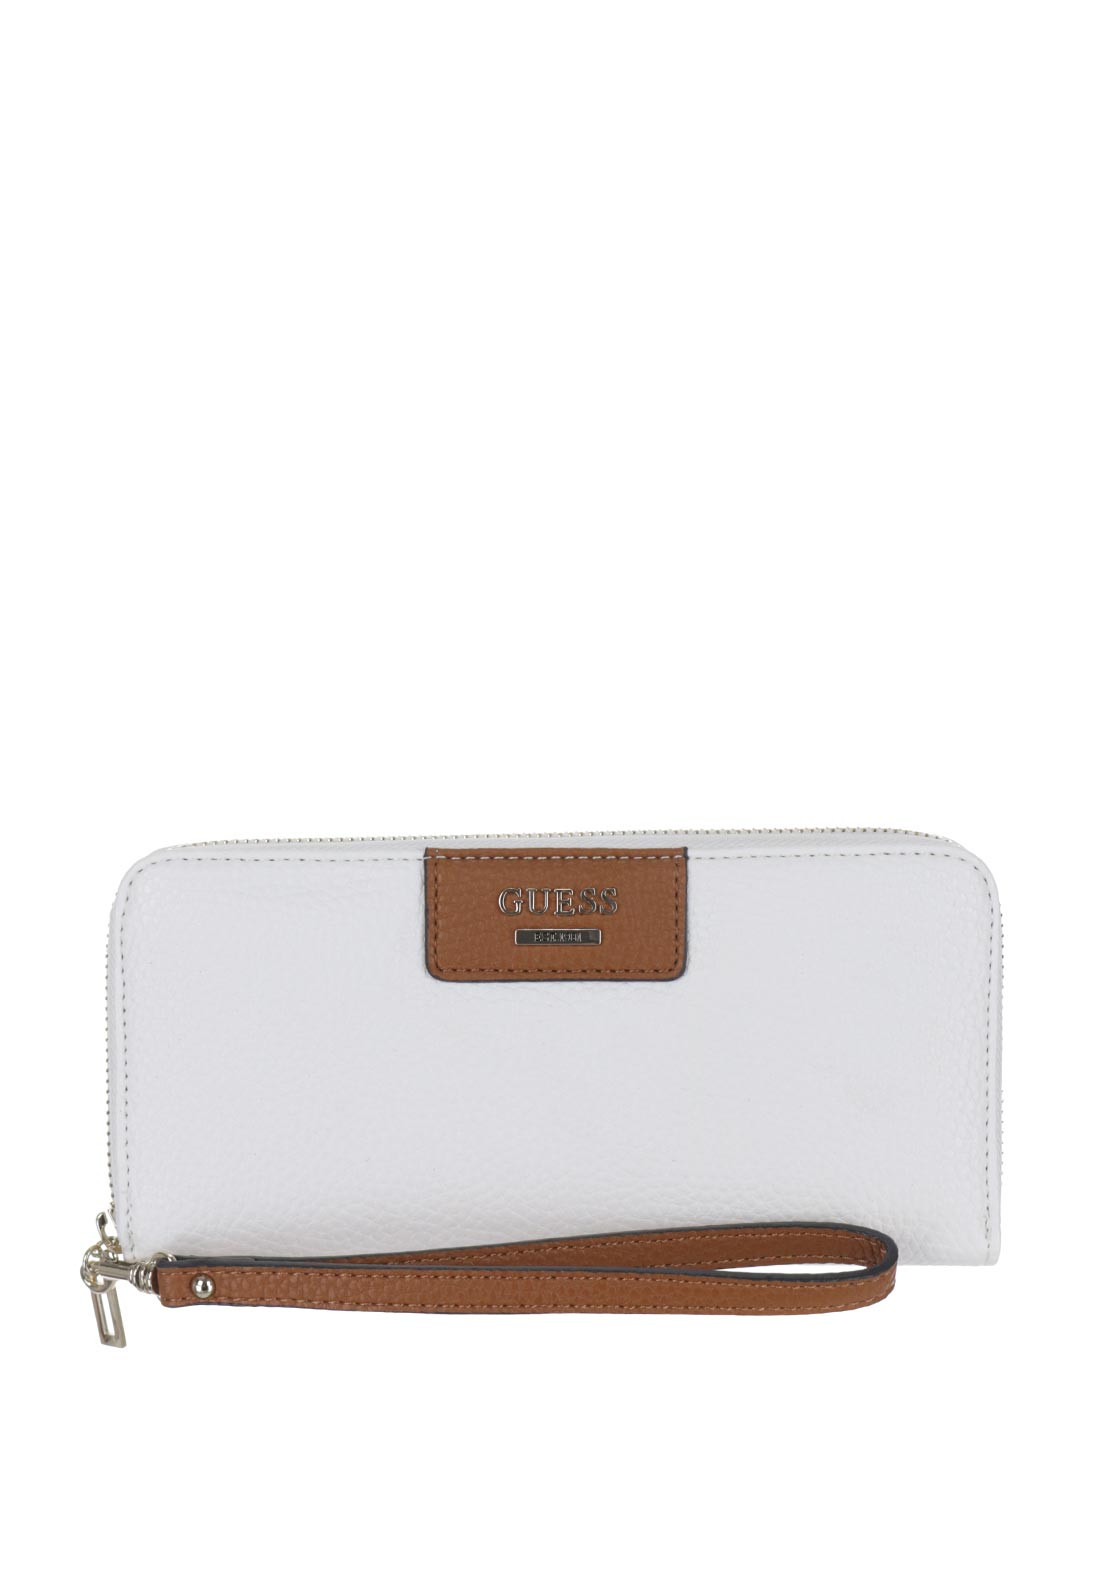 Guess Bobbi Large Wristlet Zip Around Purse, White